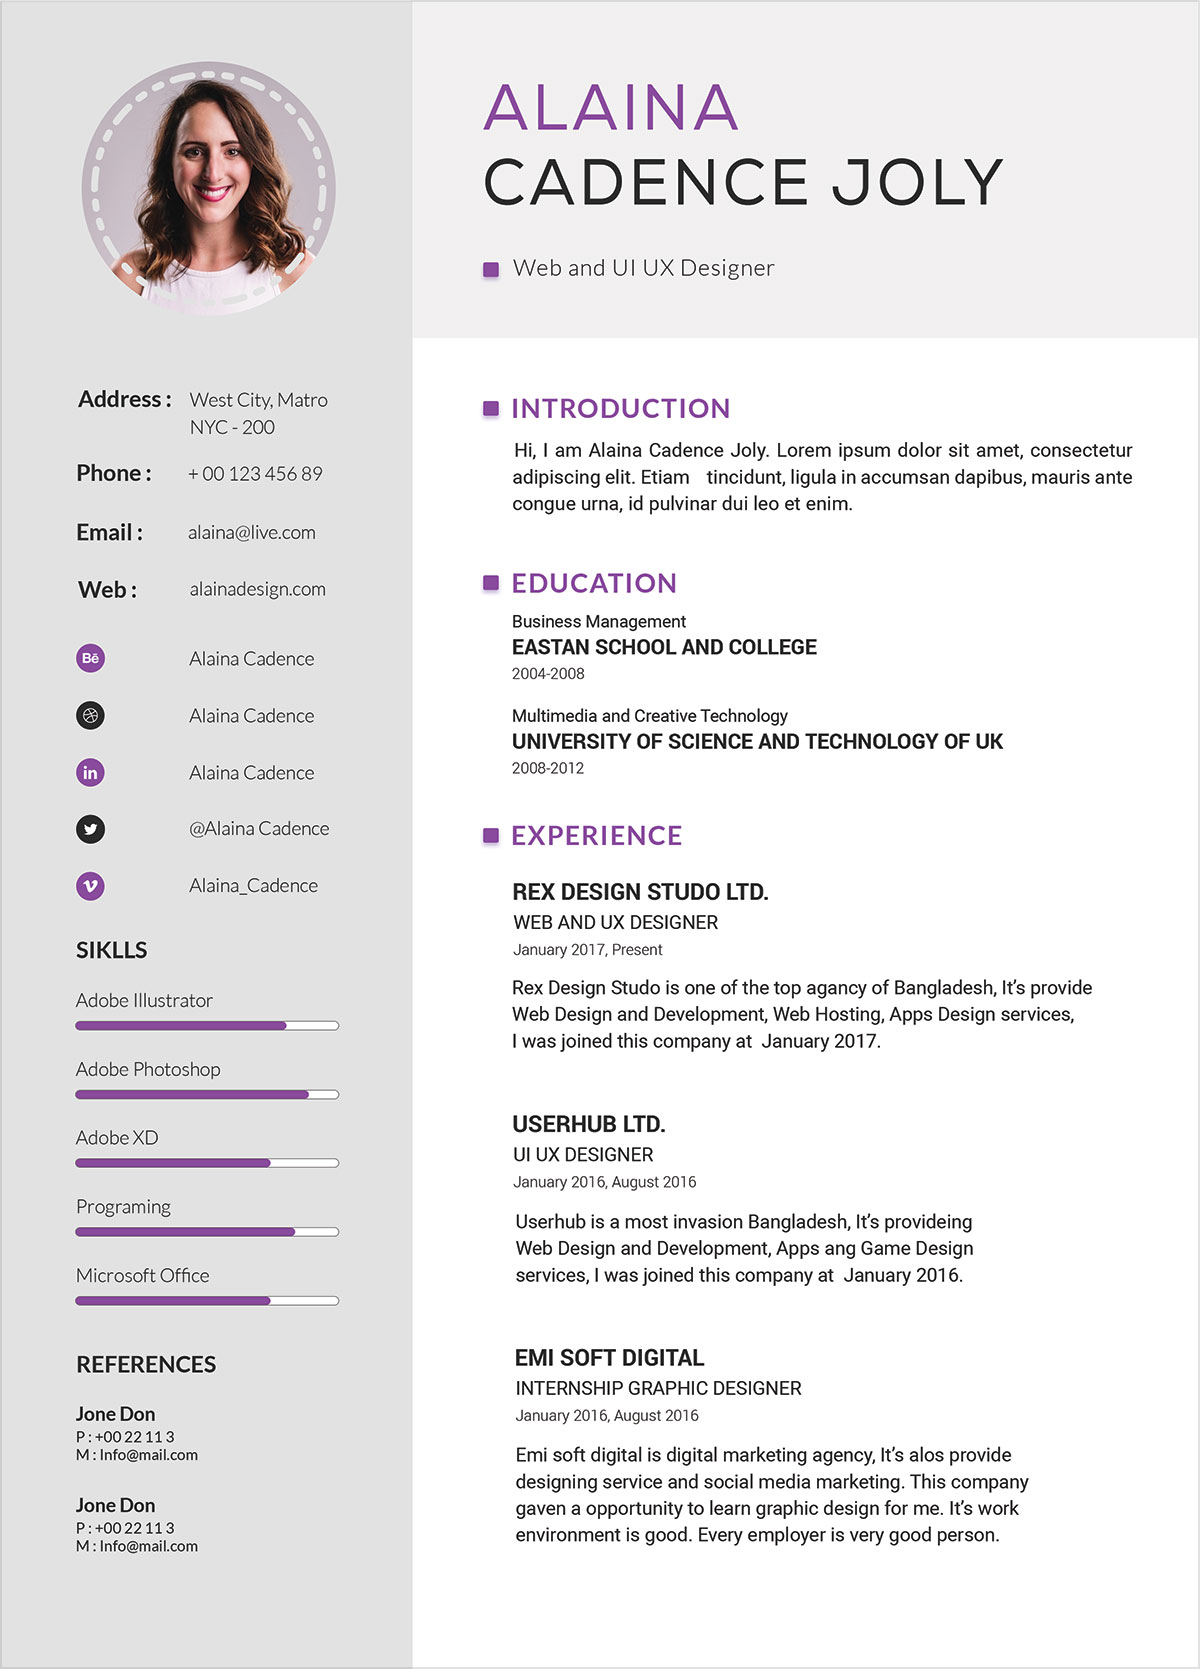 Free-Clean-&-Professional-Resume-With-Cover-Letter-PSD-6 - Copy